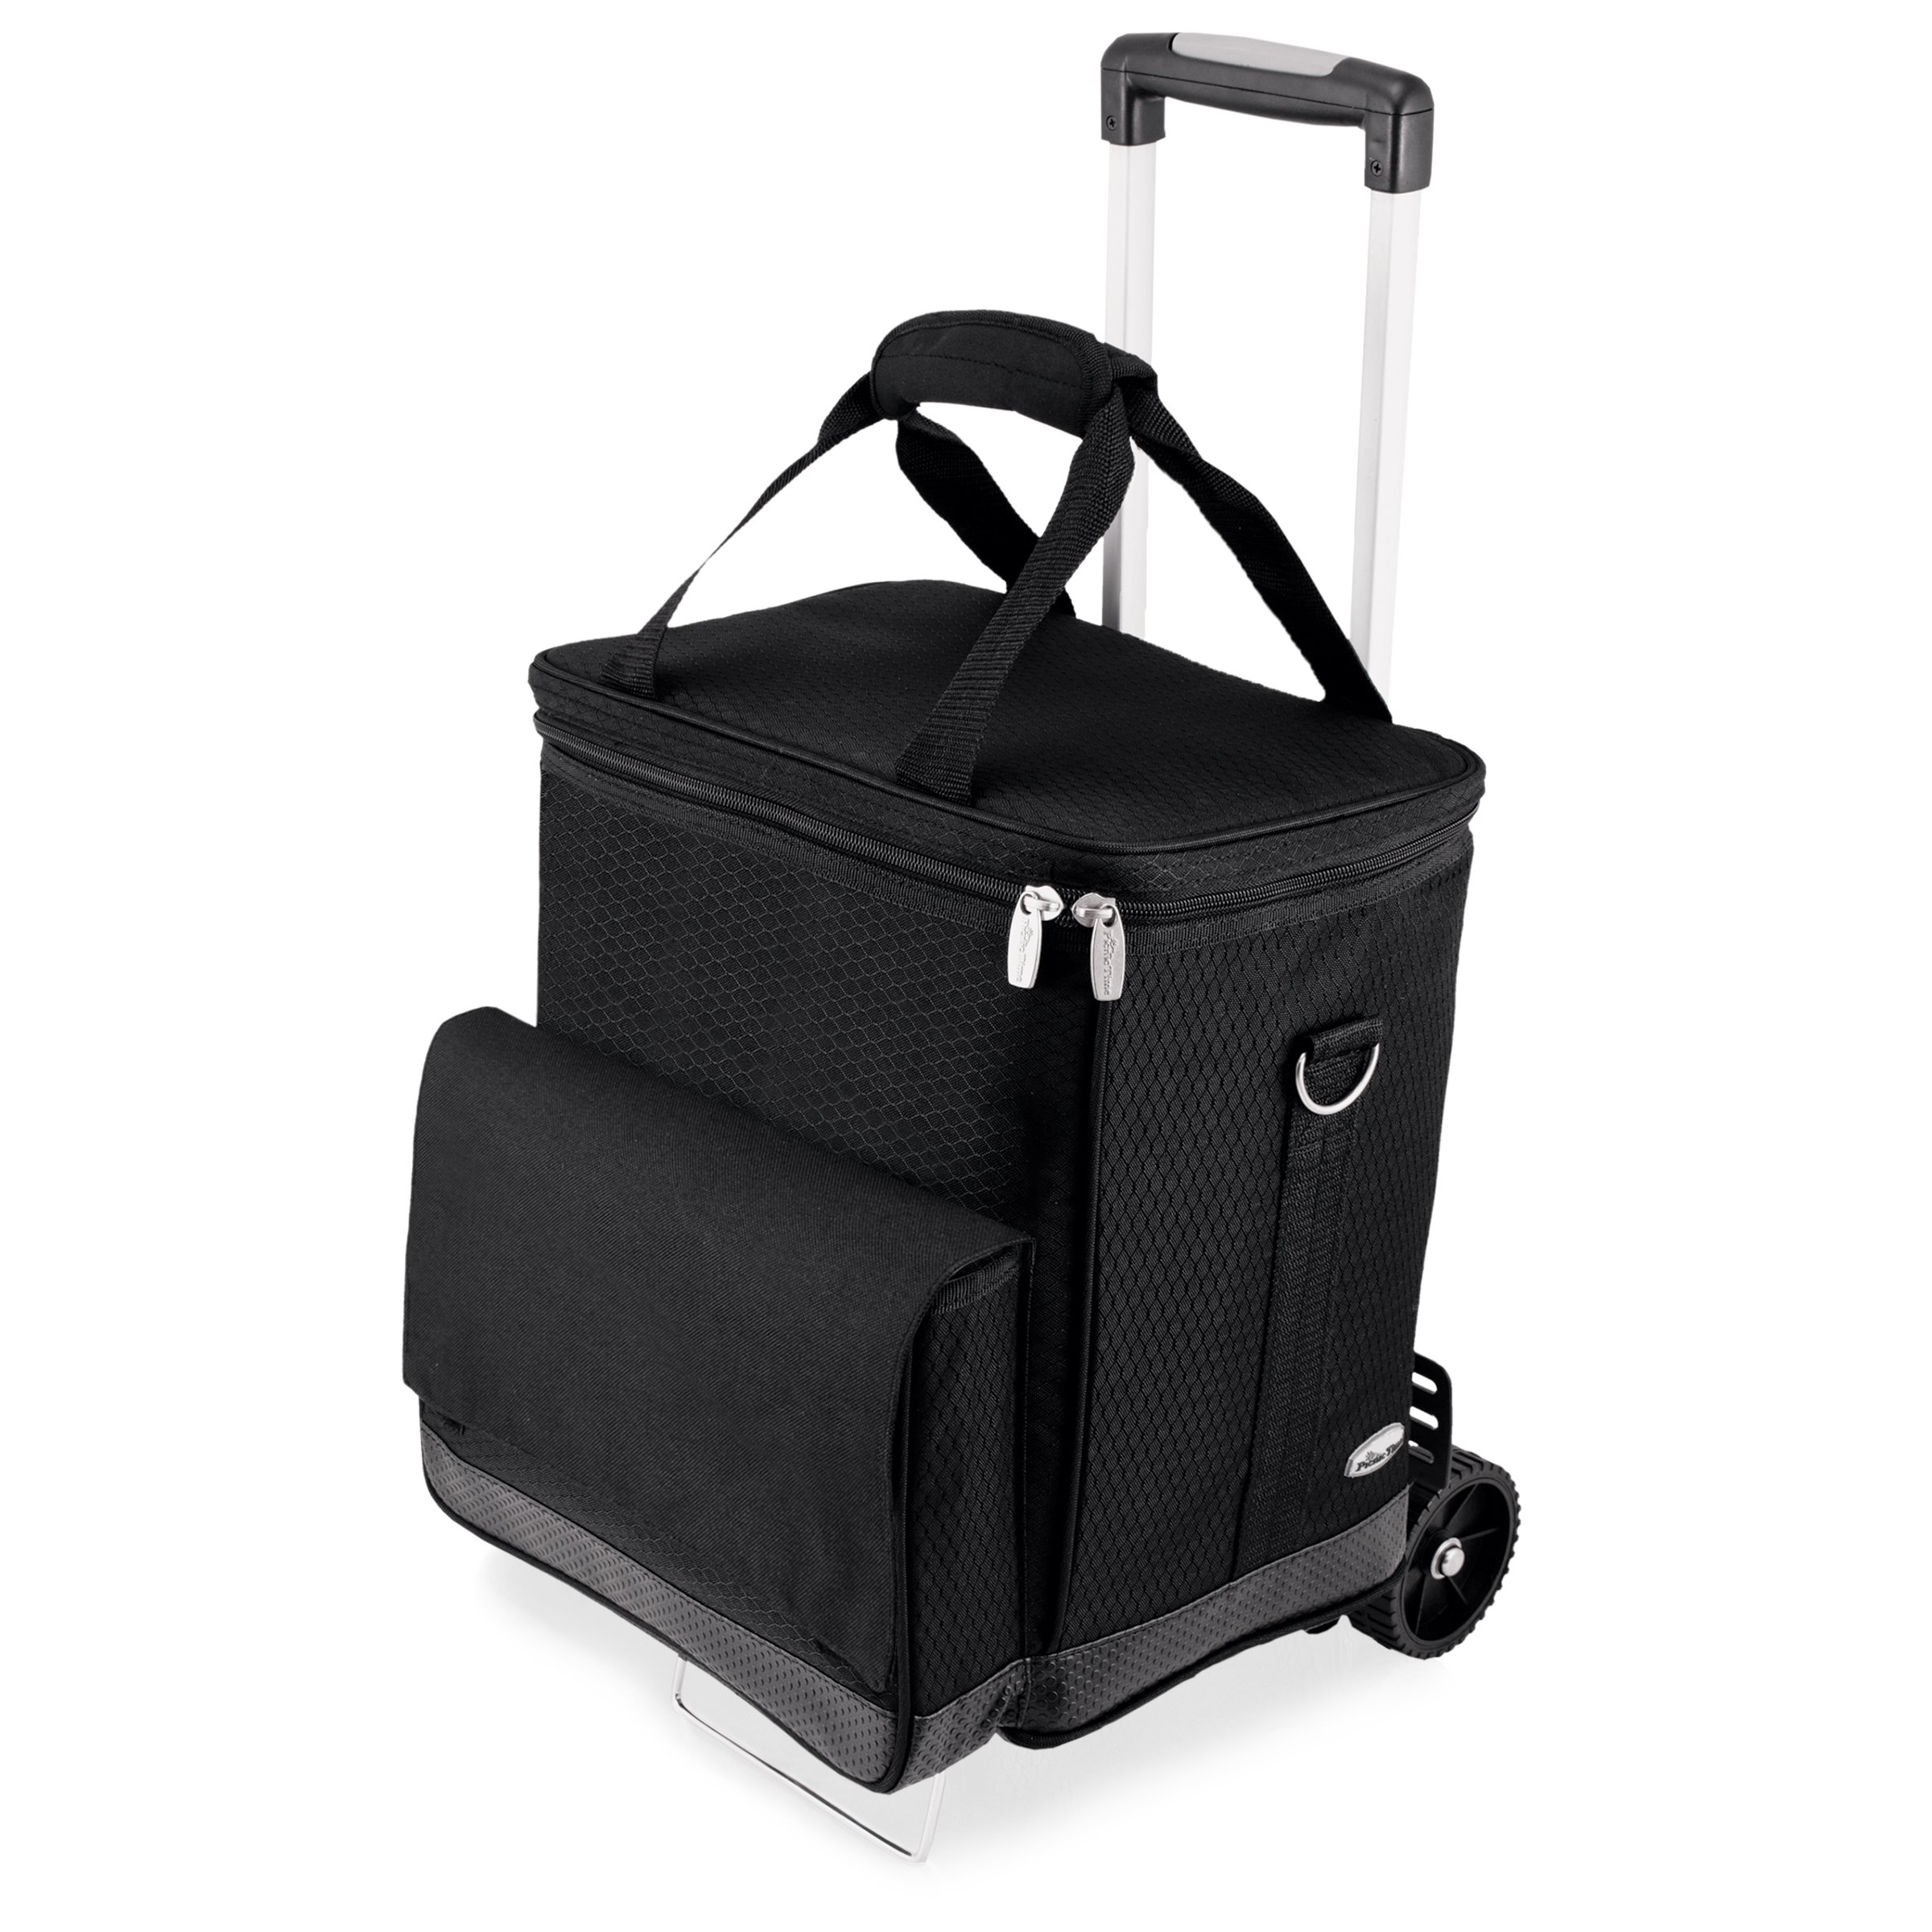 LEGACY - a Picnic Time Brand Cellar Insulated Six Bottle Wine Tote with Trolley by LEGACY - a Picnic Time Brand (Image #1)